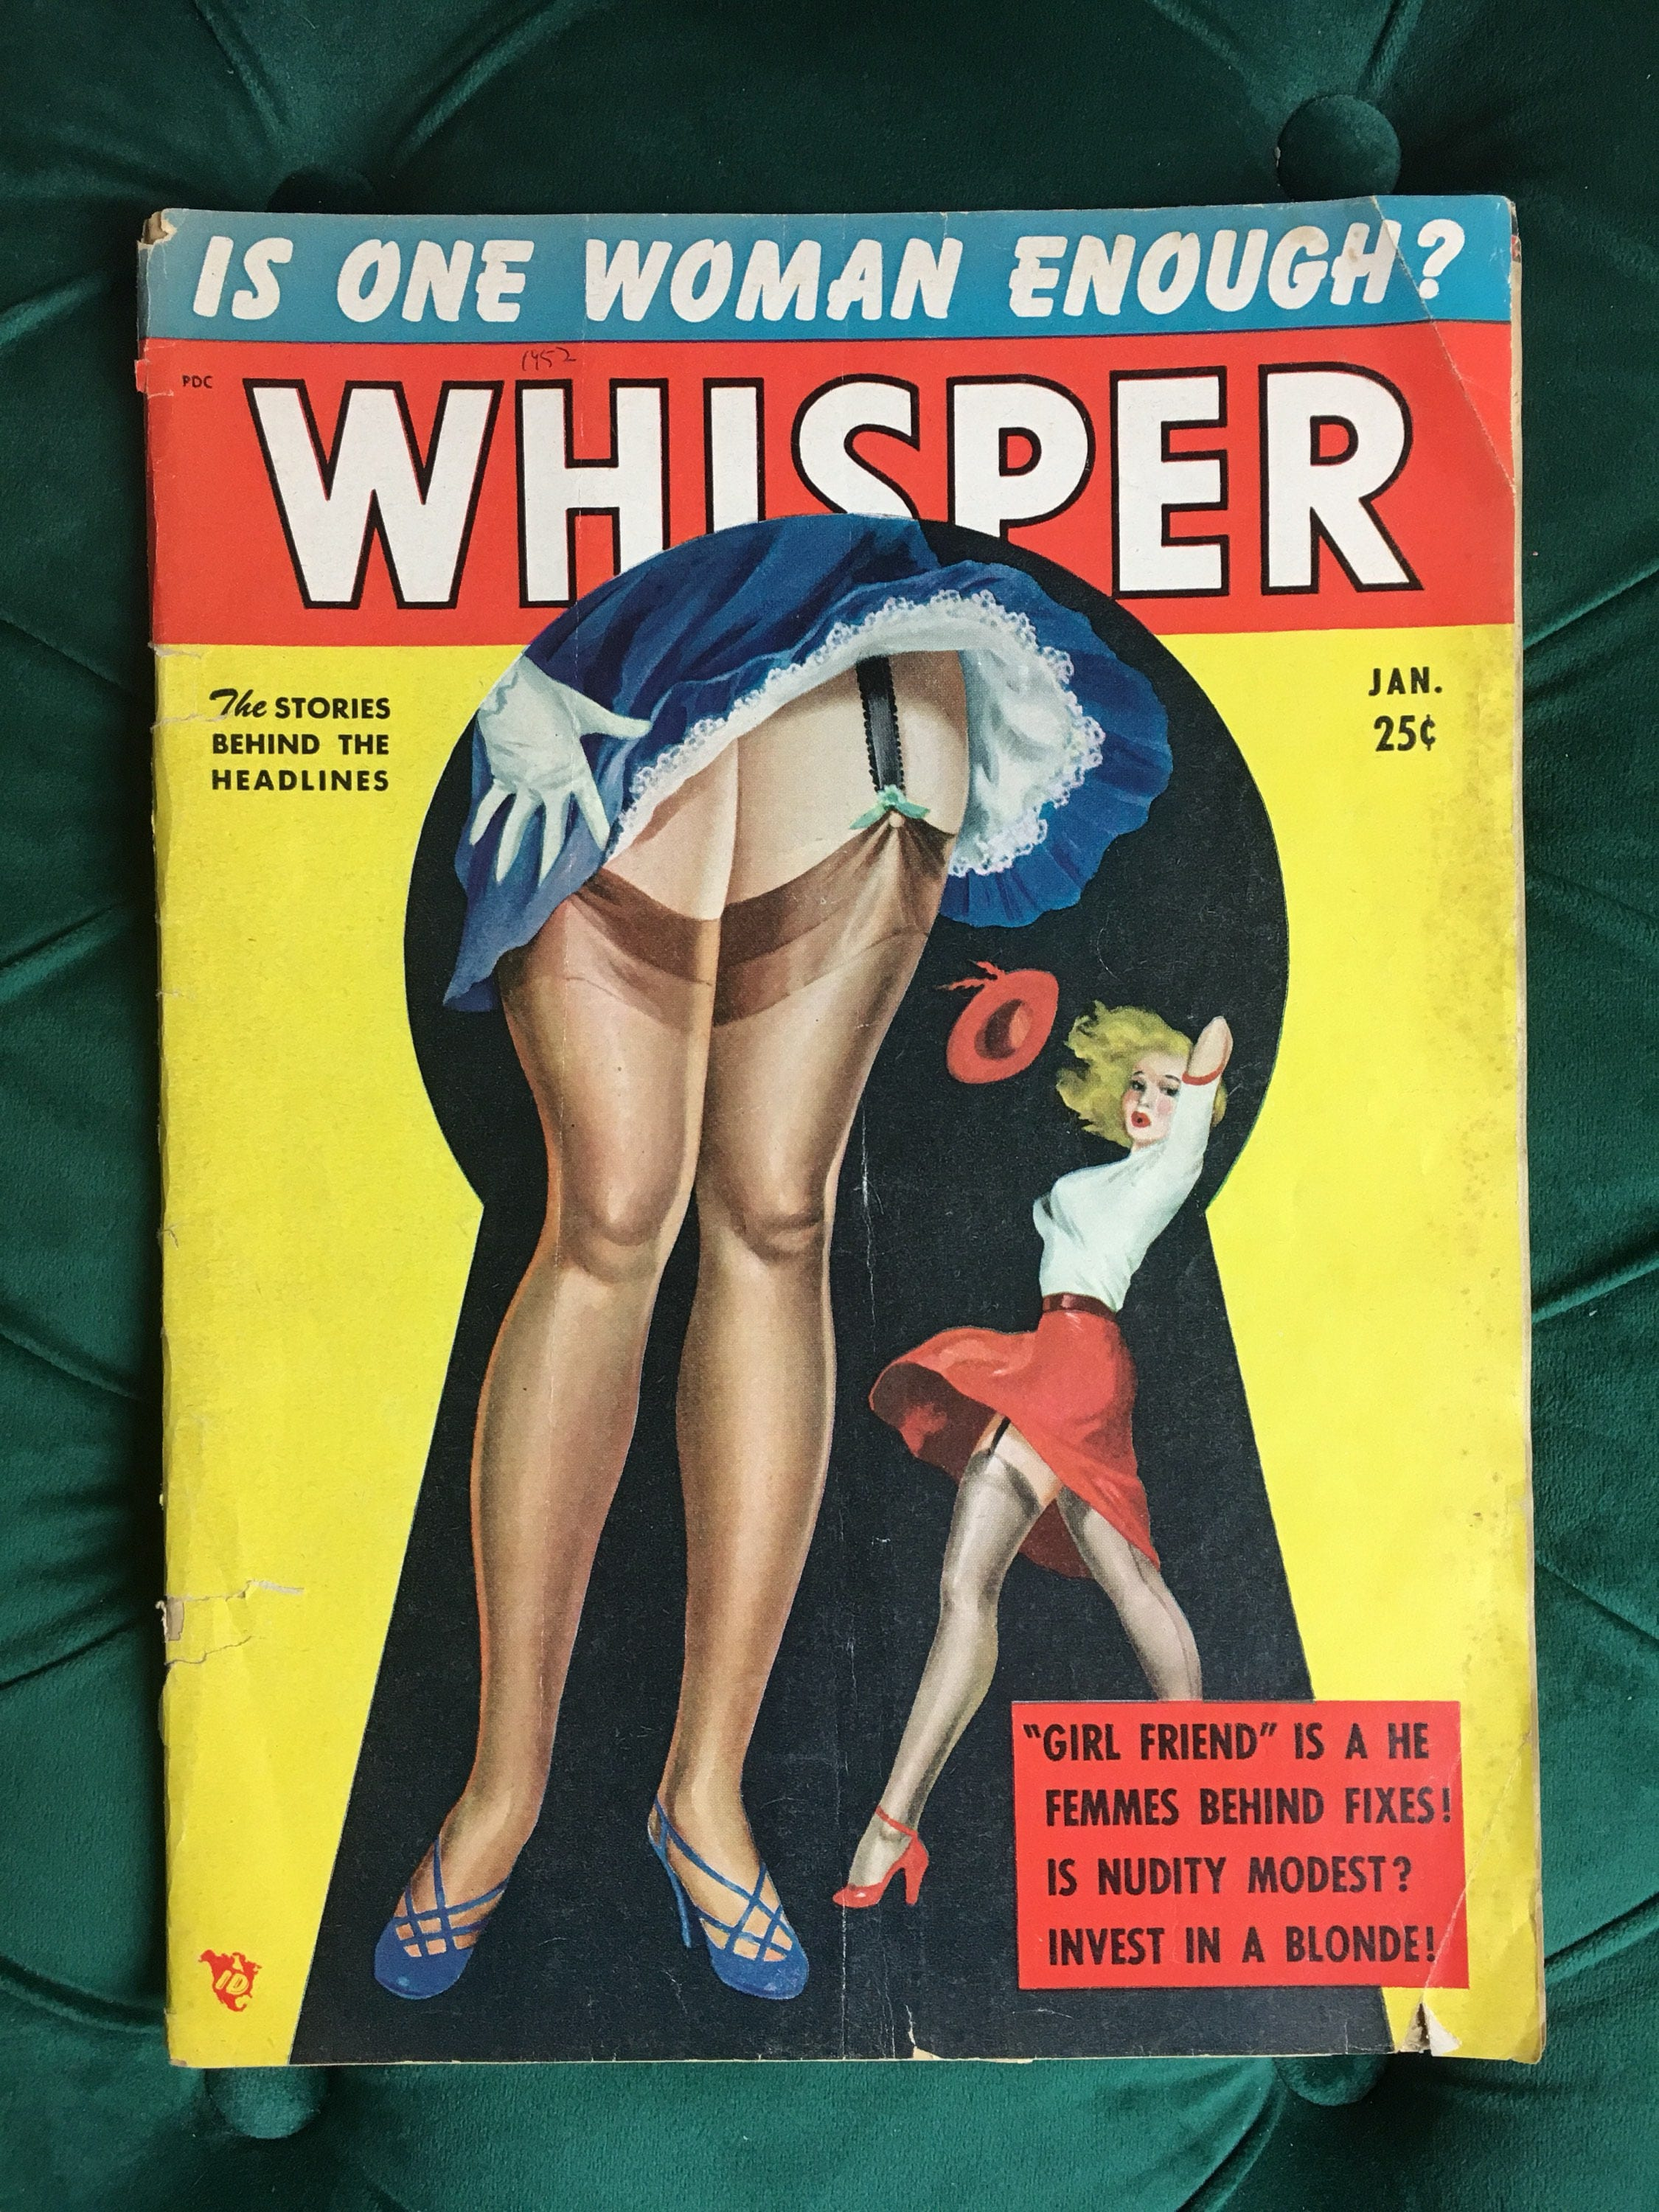 Whisper pinup magazine!